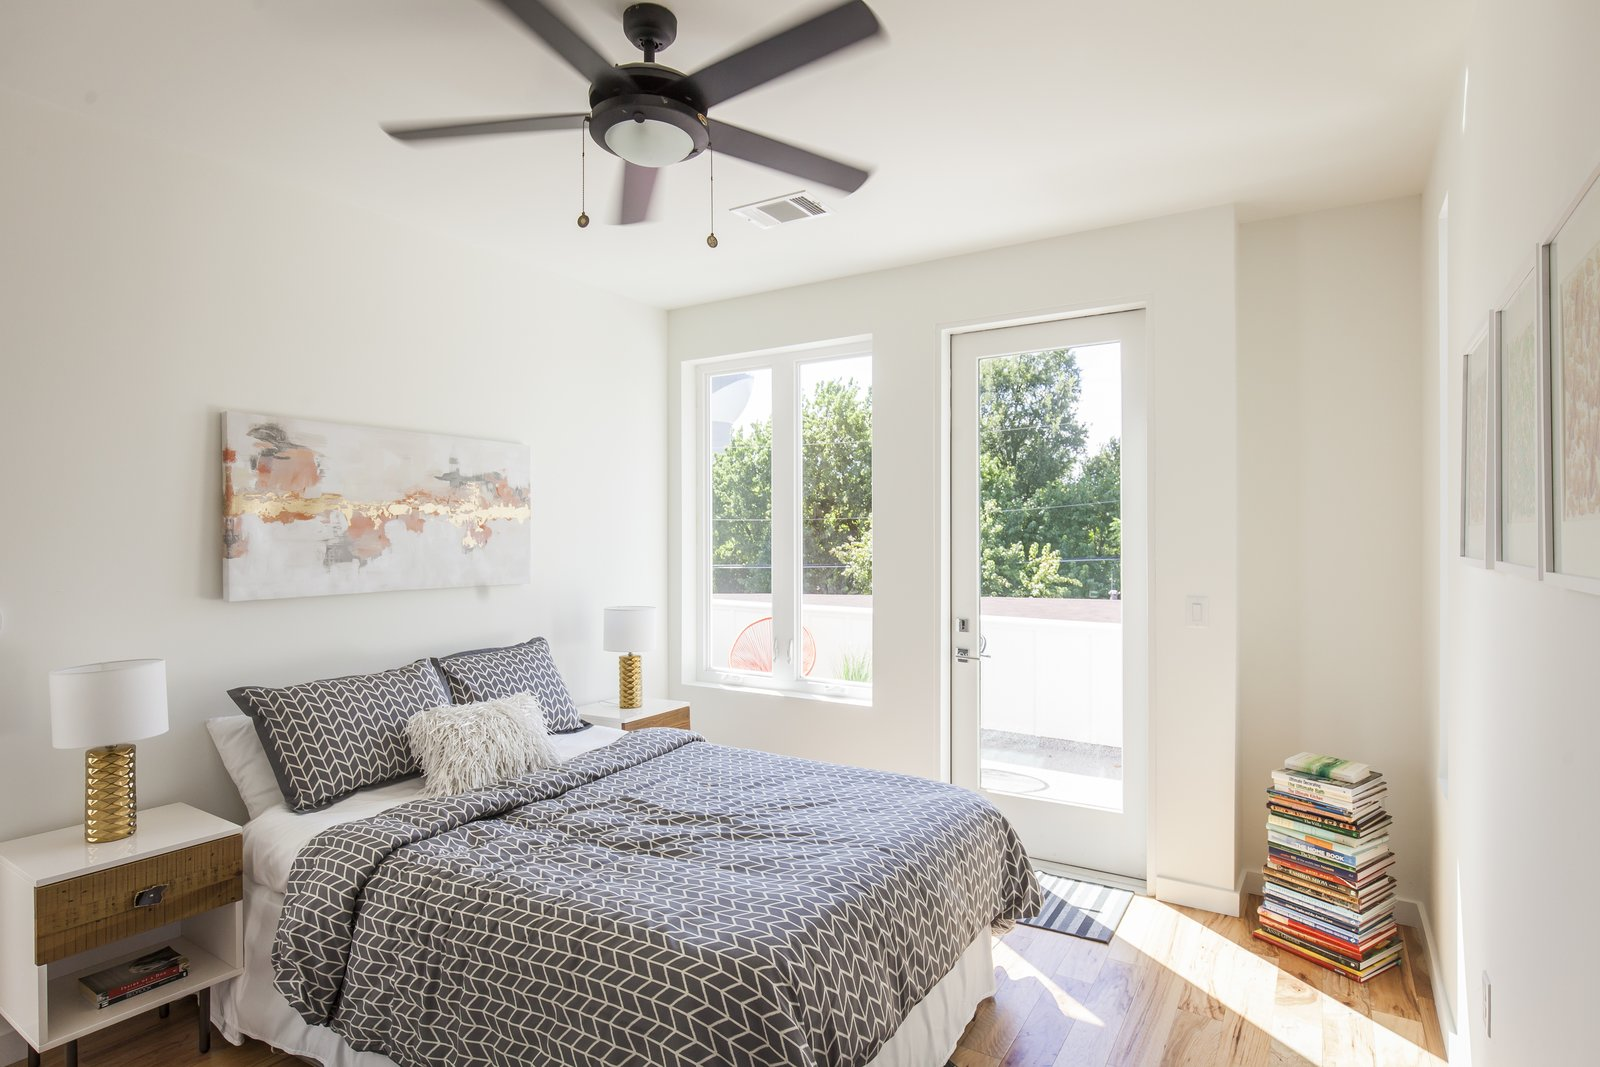 Both the master bedroom and second bedroom enjoy access to a private deck, perfect for reading, enjoying a cup of coffee, or simply lounging in the sun.